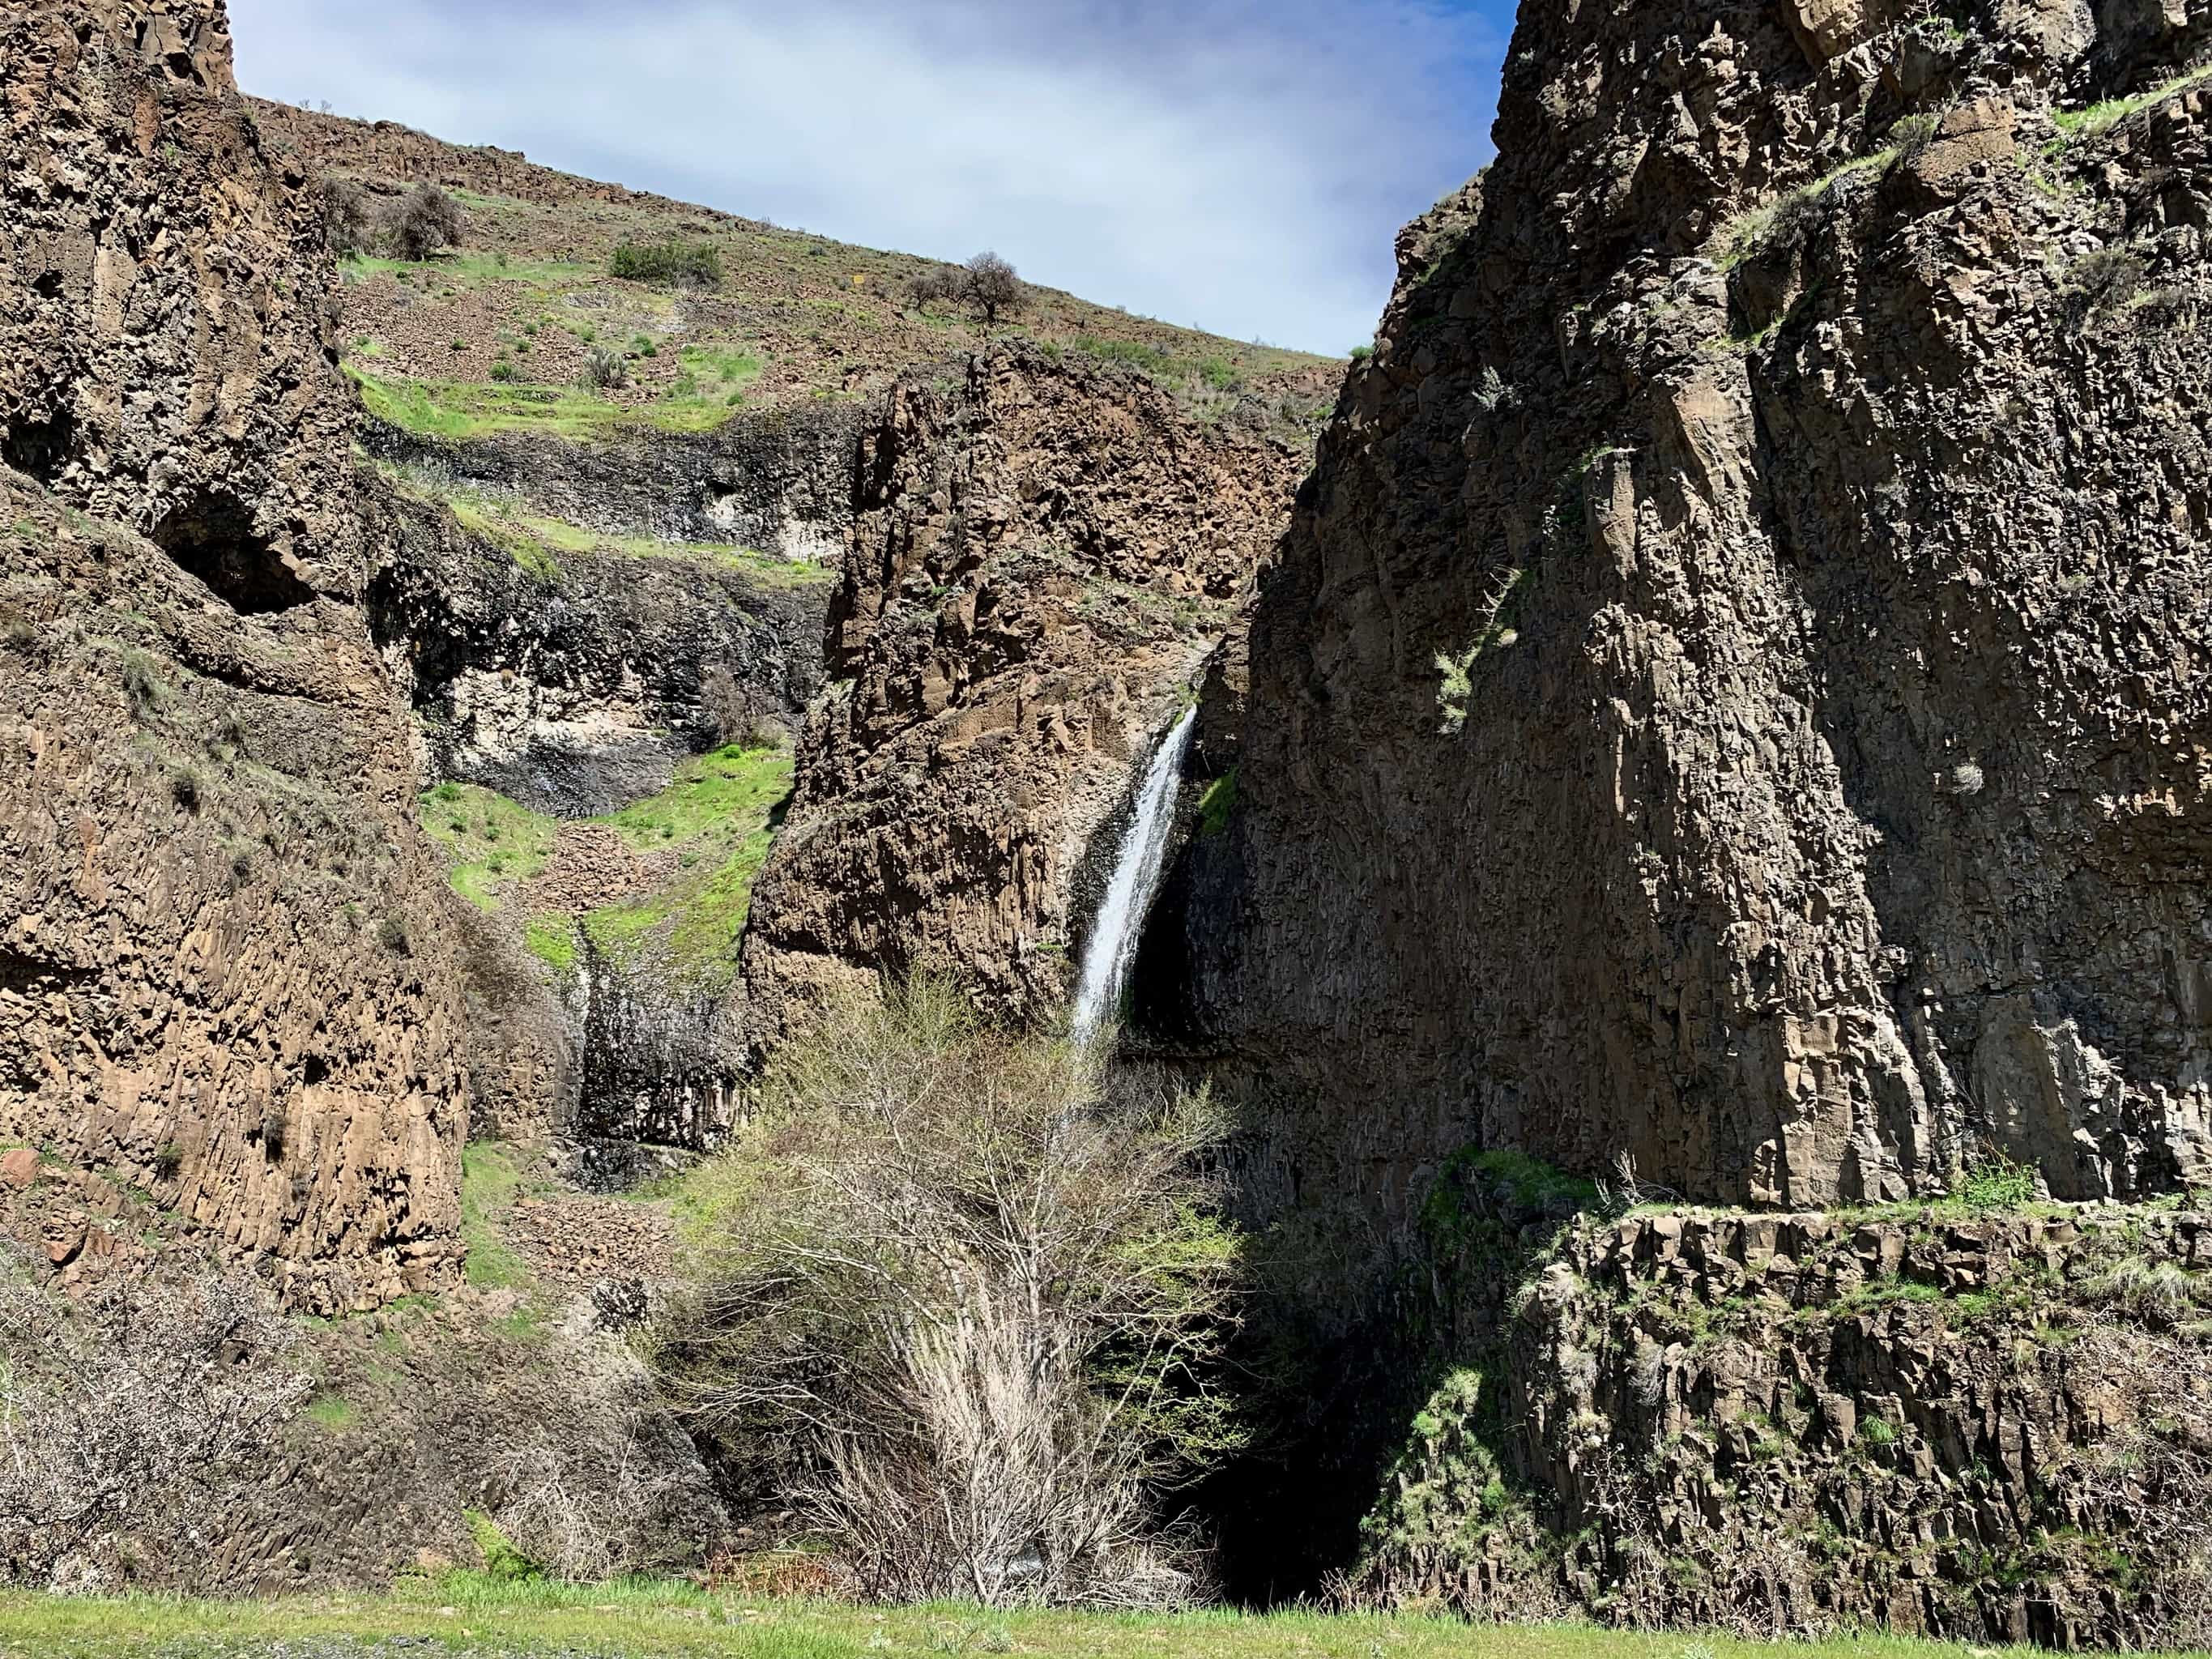 Waterfall flowing into the lower Deschutes River.